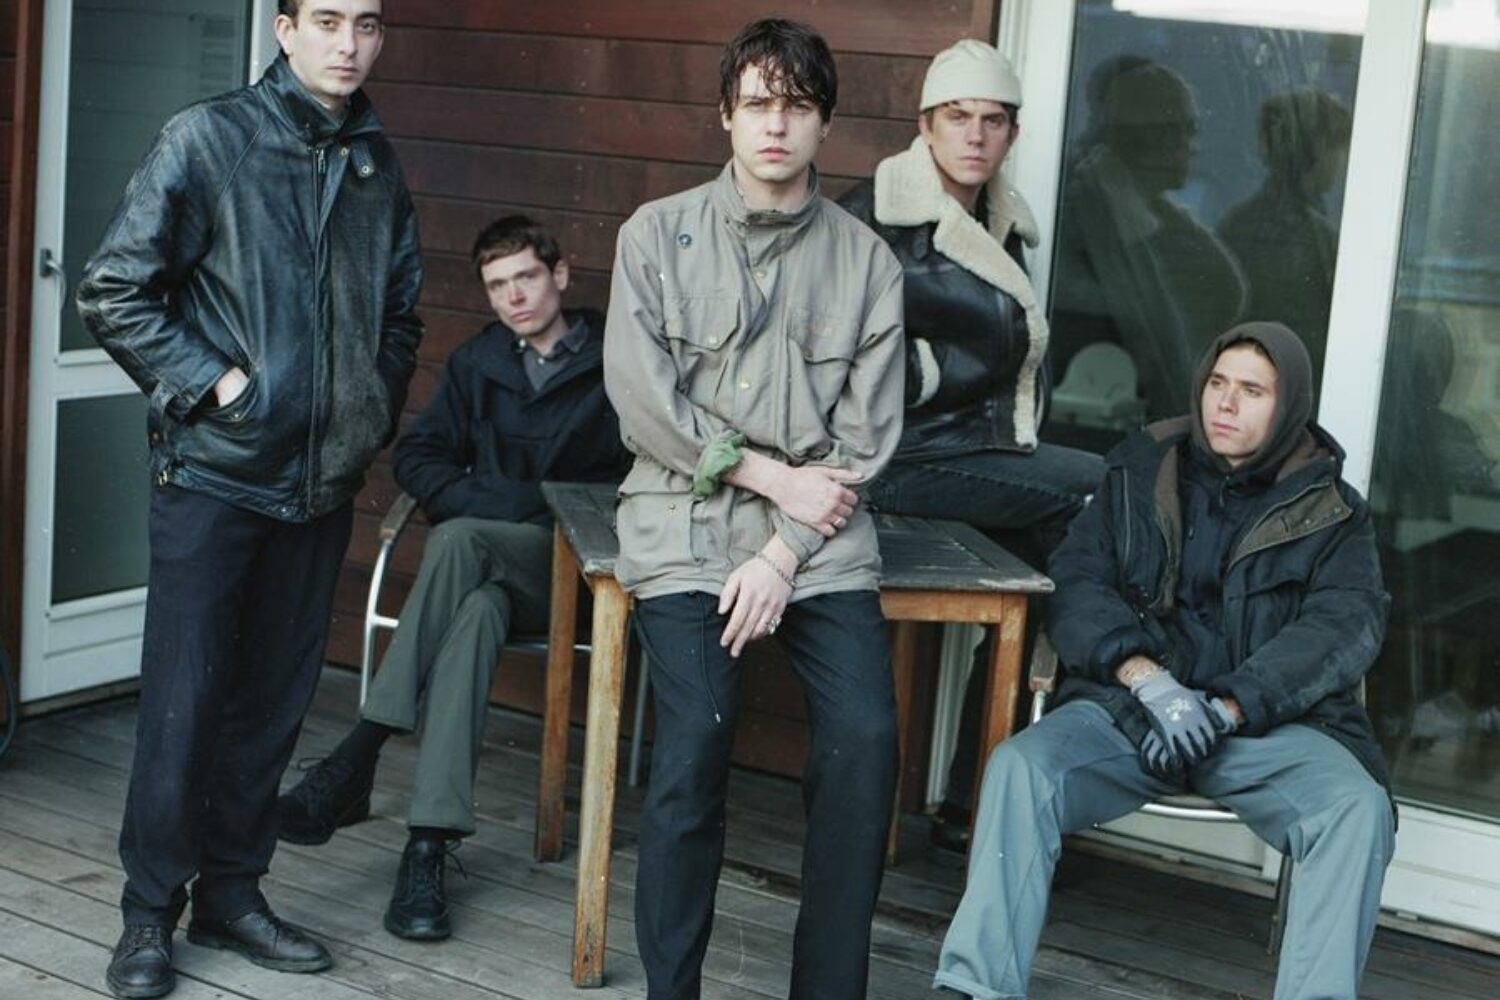 Iceage release new single 'The Holding Hand'